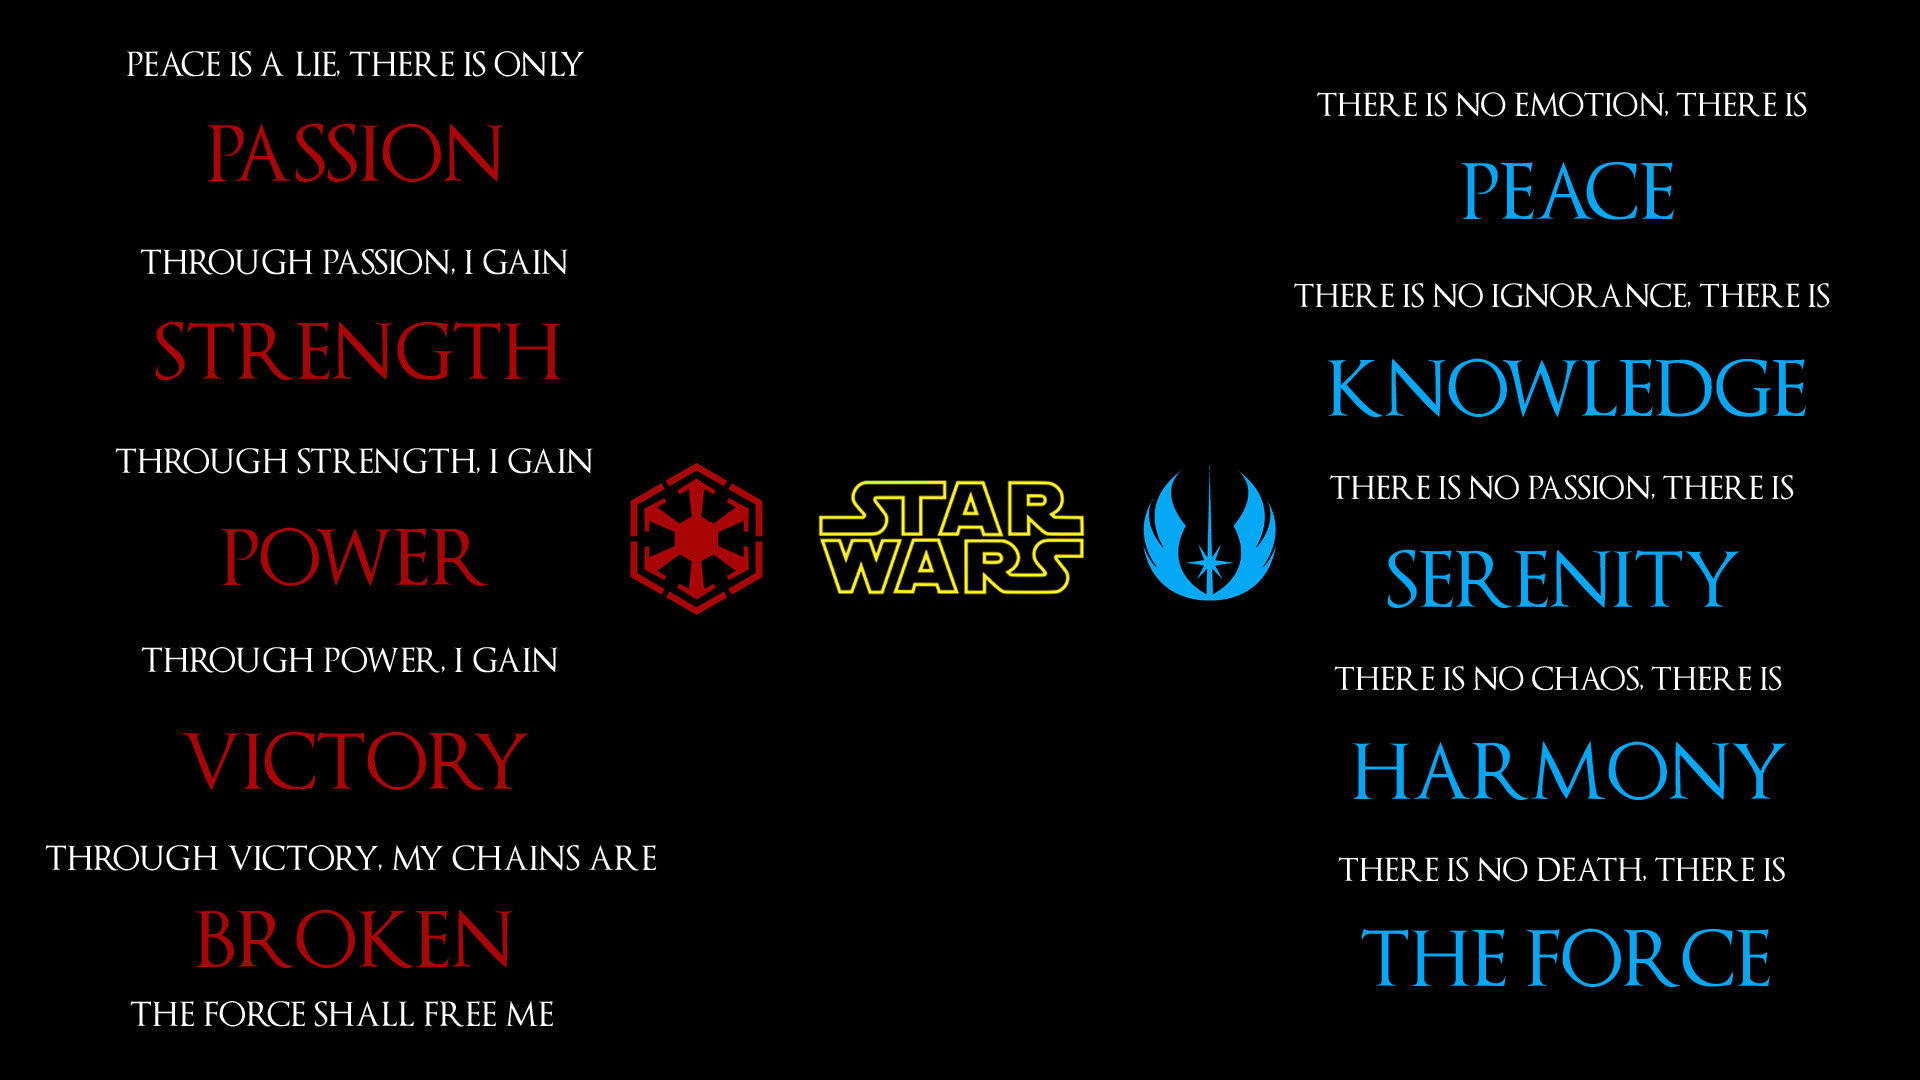 Star Wars Codes Hd Wallpaper